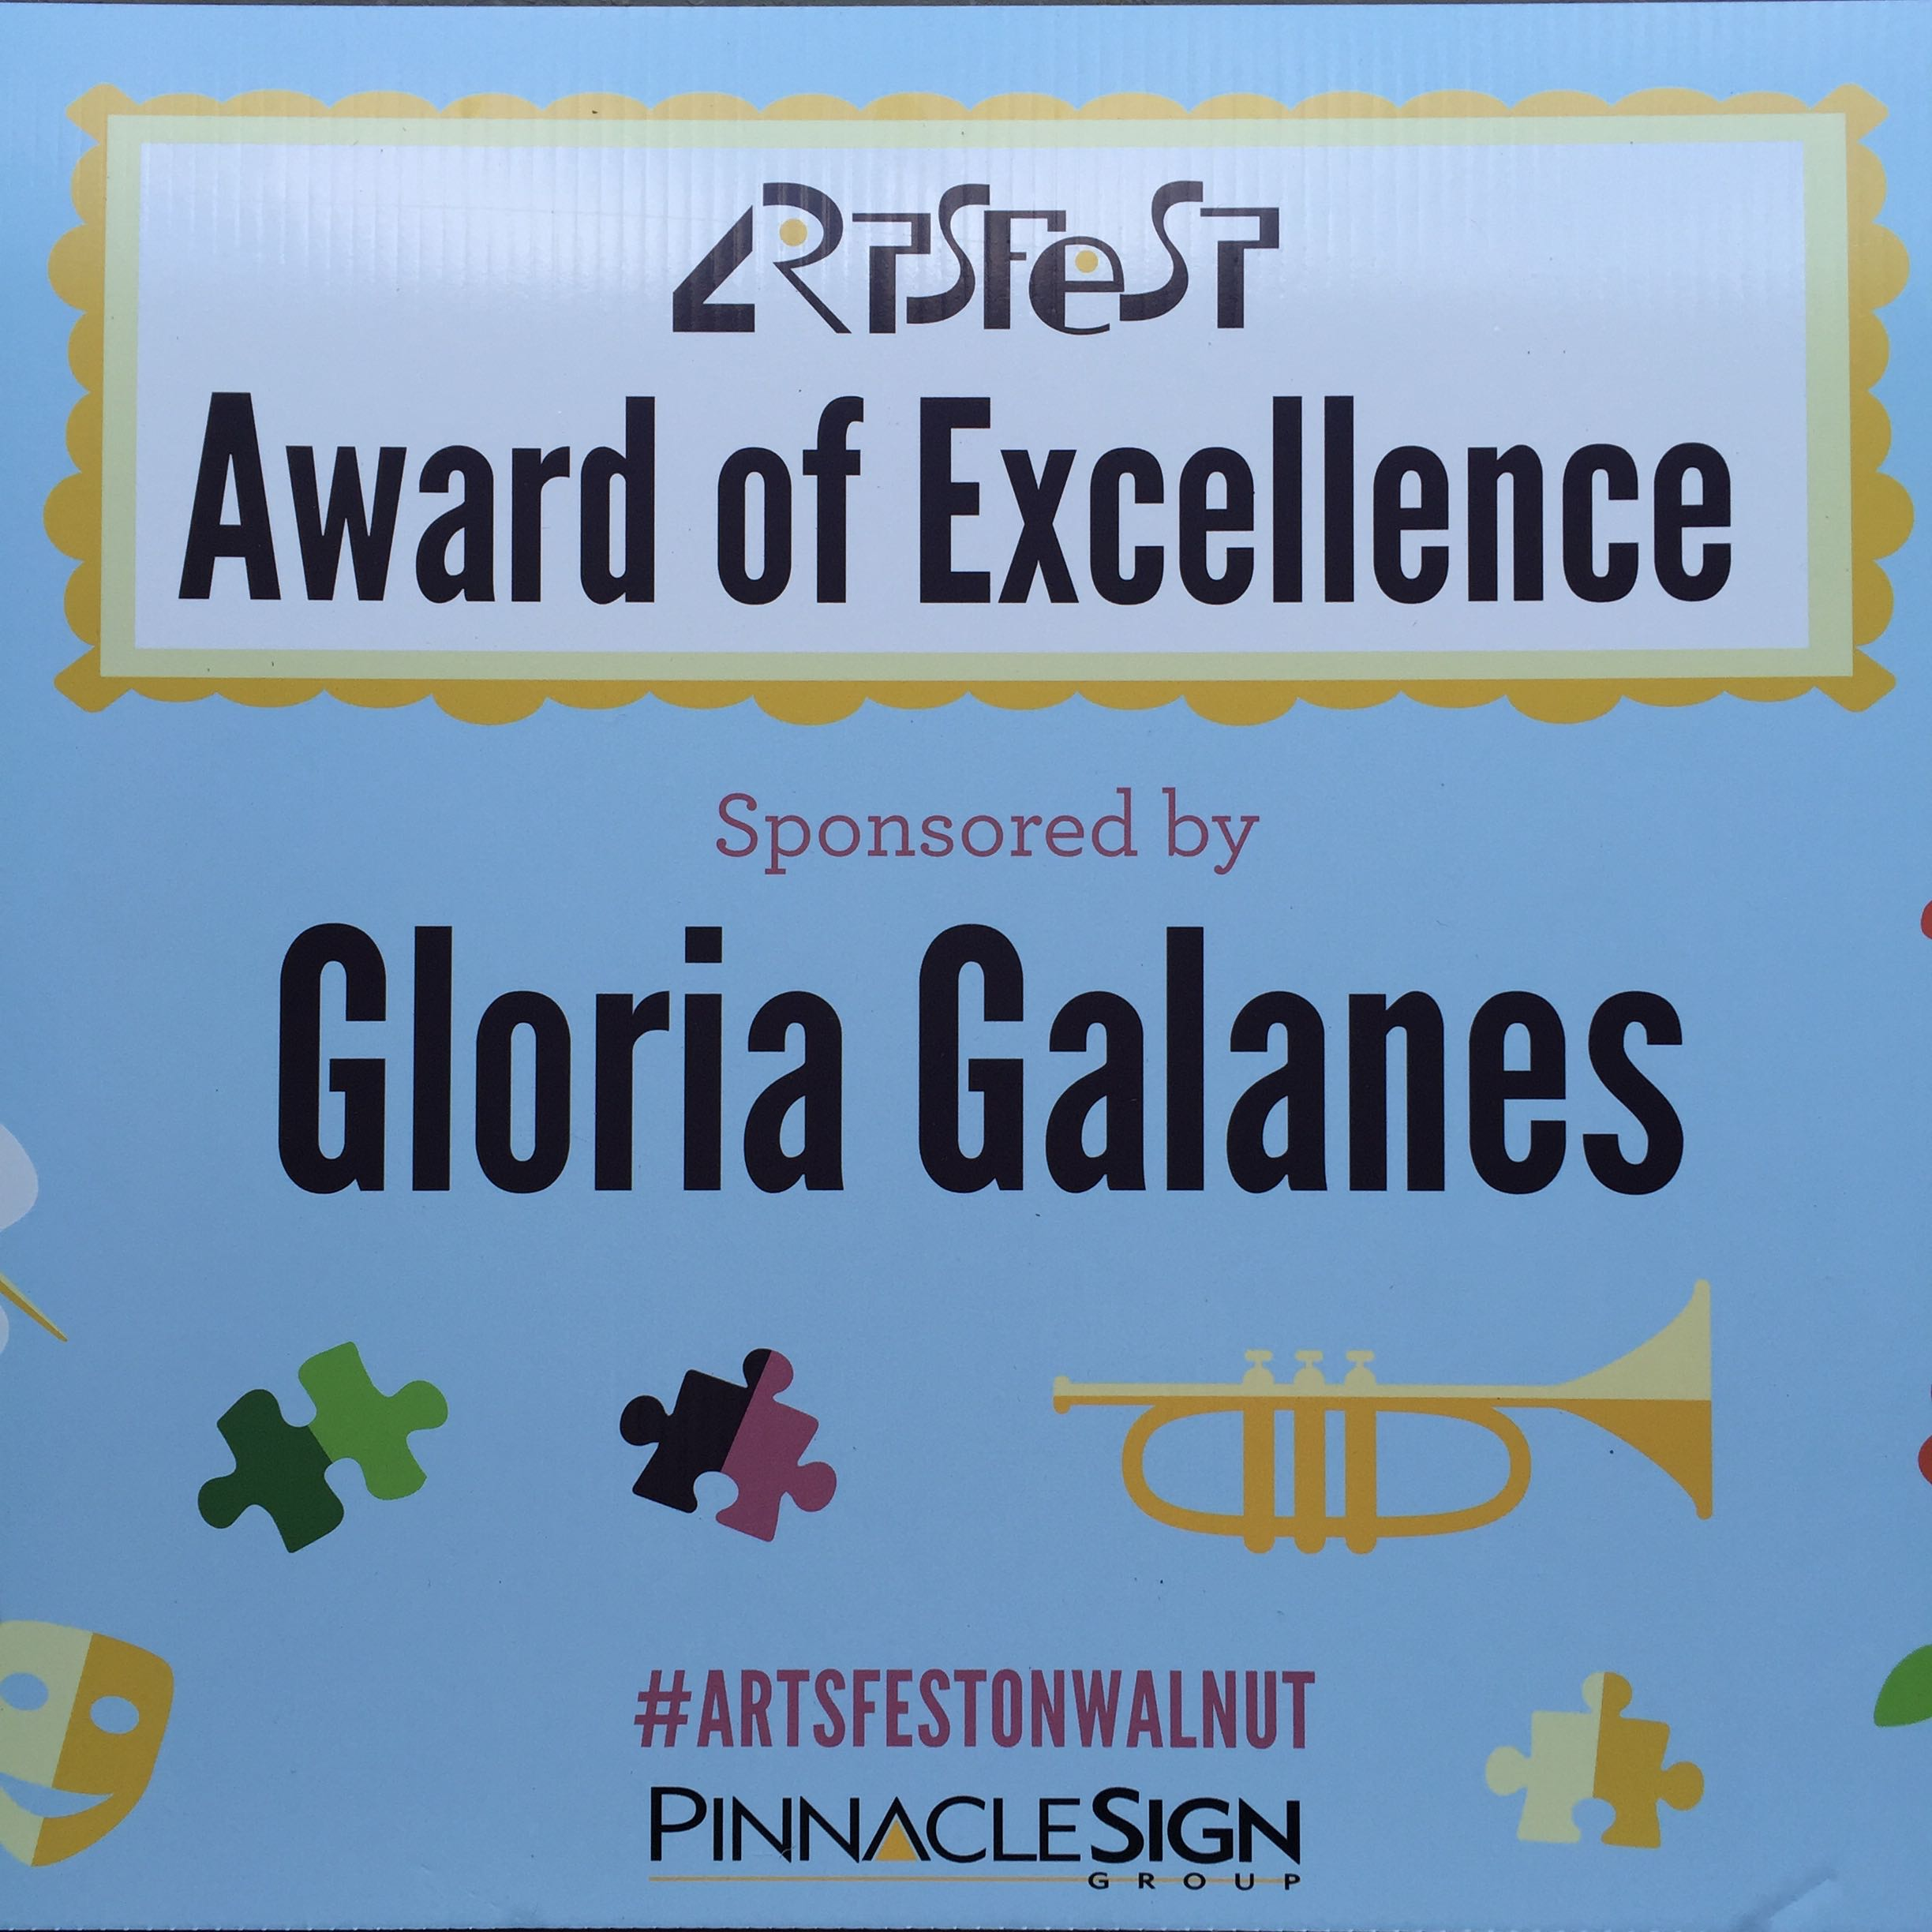 artsfest | Gloria Galanes Award of Excellence